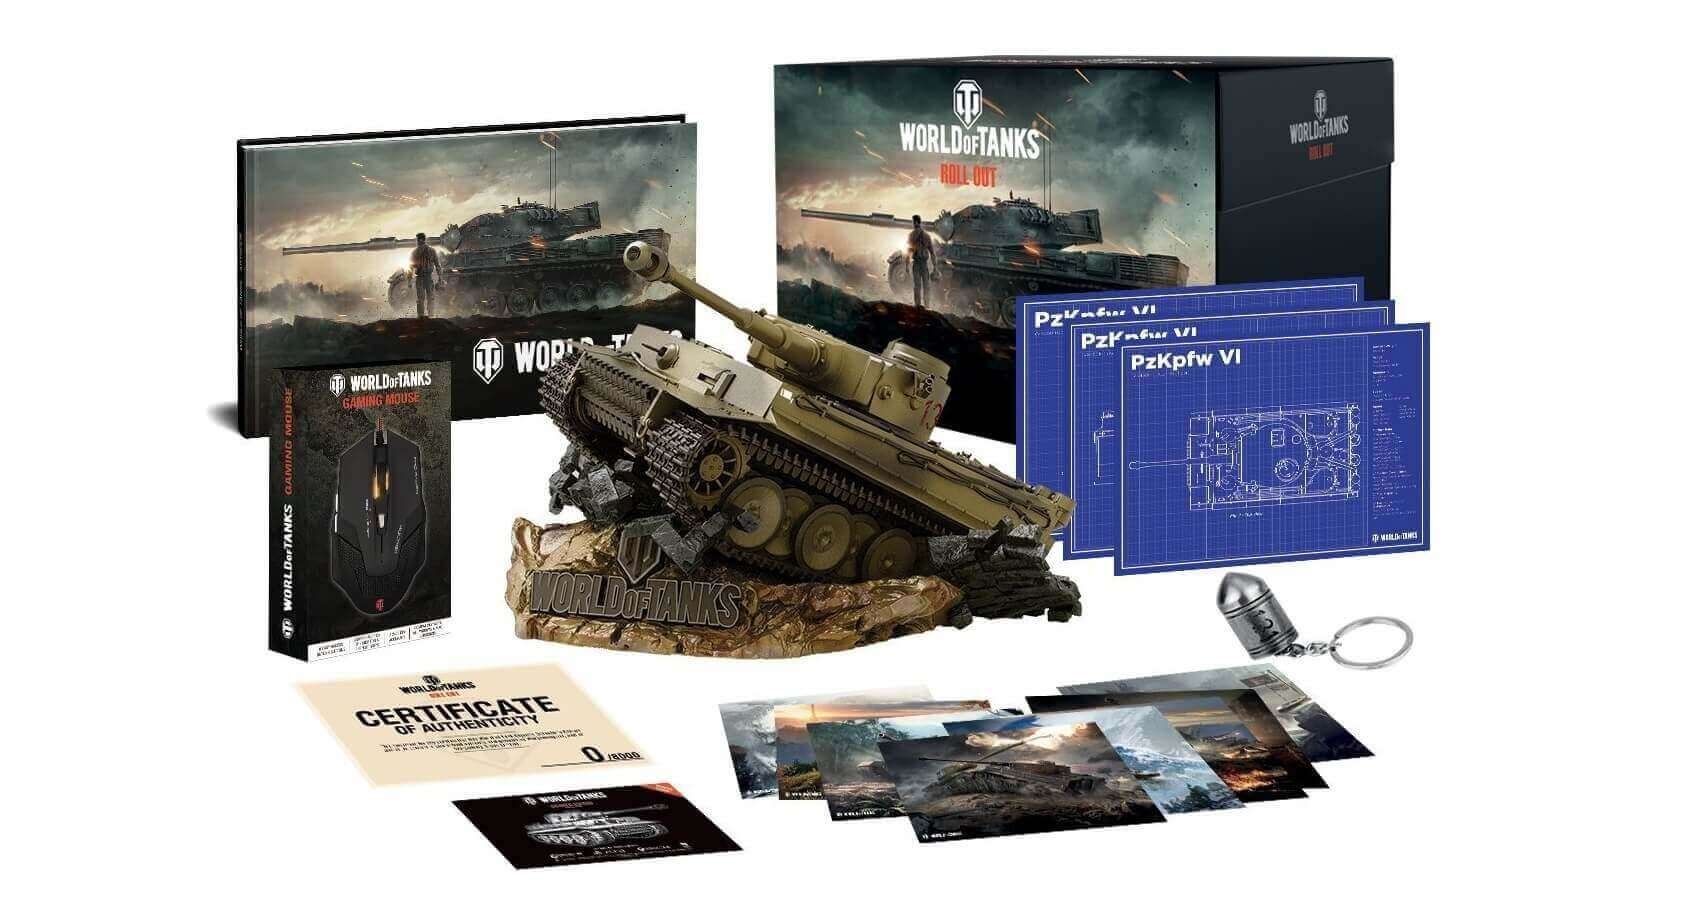 World Of Tanks Collector S Edition Now Available In North America World Of Tanks Console World Of Tanks Xbox One Xbox One Games